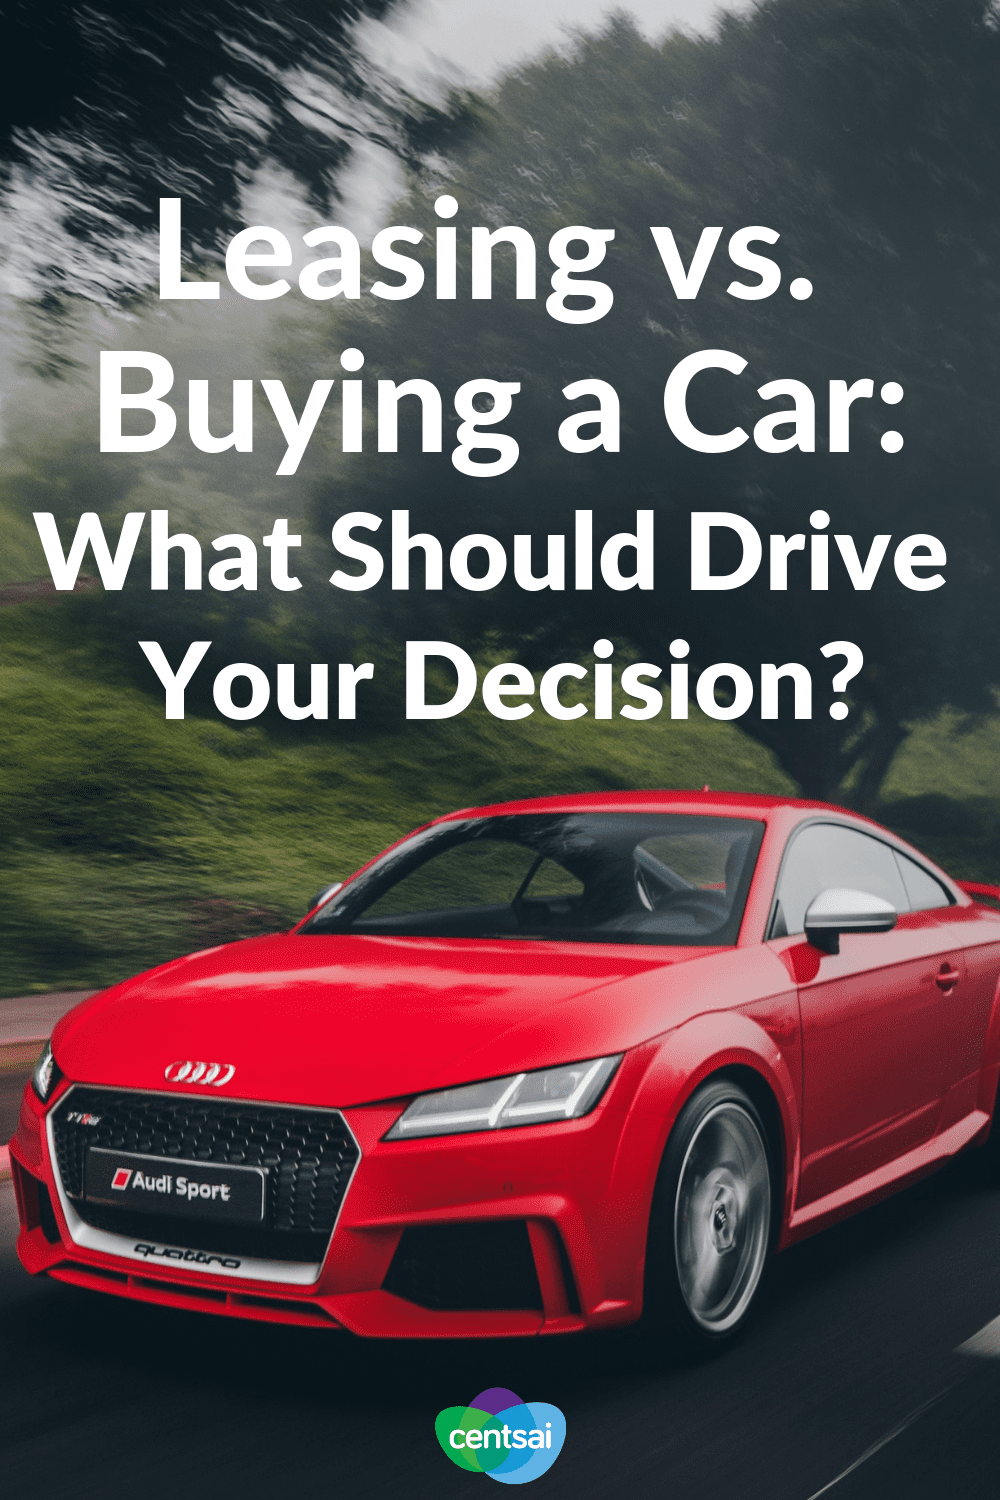 Leasing vs. Buying a Car: What Should Drive Your Decision? Should you really buy a new vehicle? Might it be smarter to temporarily lease it? Check out our comparison of leasing vs. buying a car. #Leasecar #frugaltips #frugallifehacks #buycar